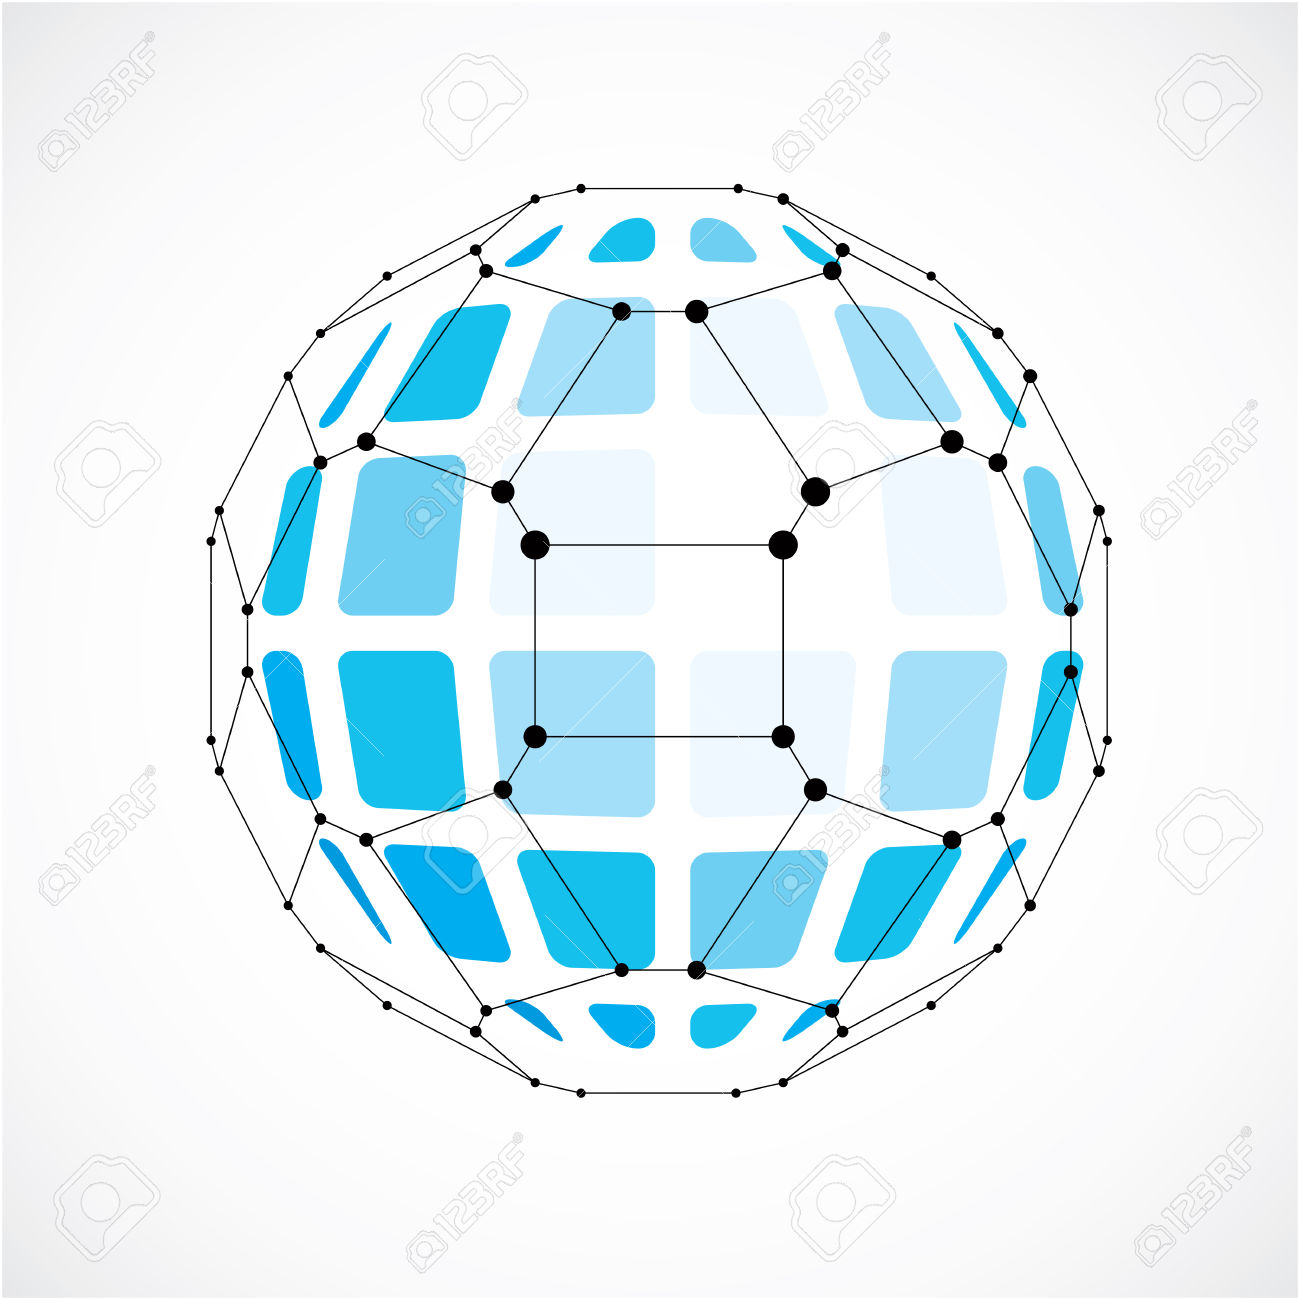 Vector Dimensional Wireframe Low Poly Object, Spherical Blue.